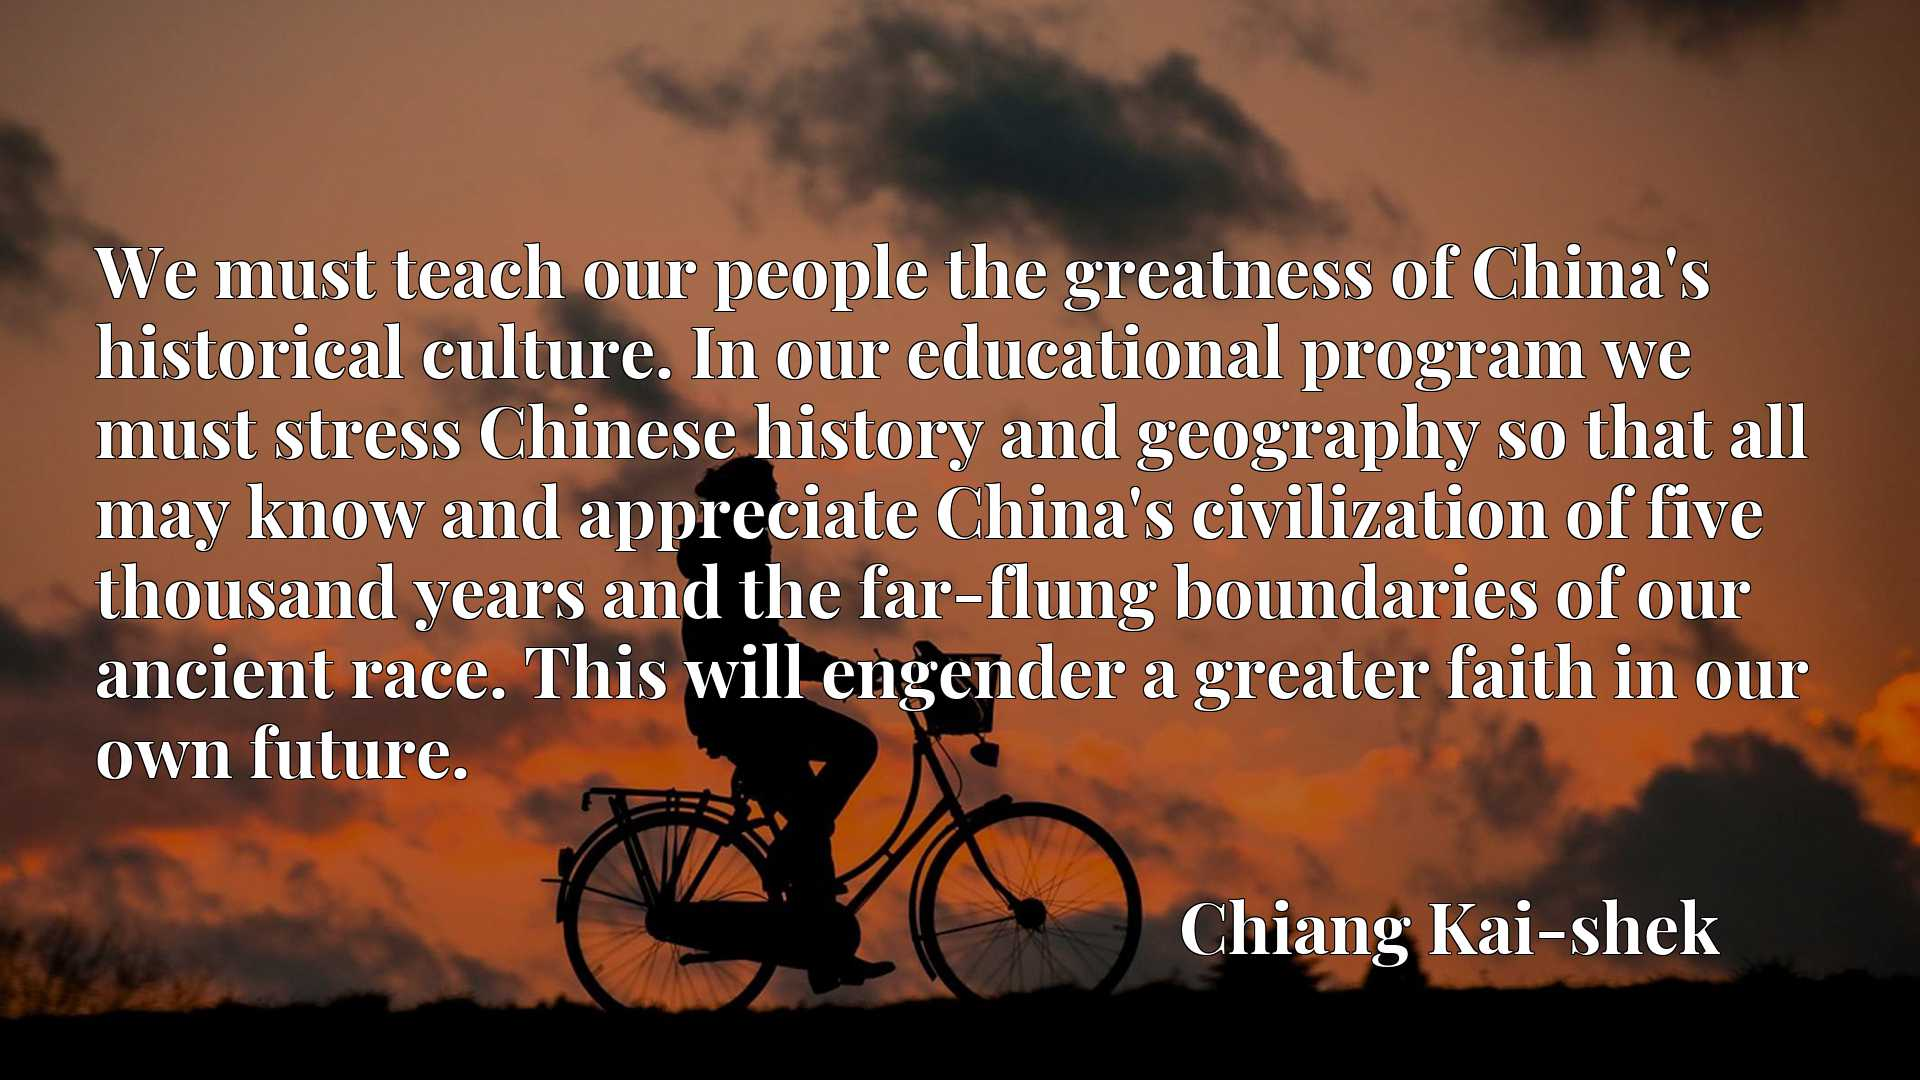 We must teach our people the greatness of China's historical culture. In our educational program we must stress Chinese history and geography so that all may know and appreciate China's civilization of five thousand years and the far-flung boundaries of our ancient race. This will engender a greater faith in our own future.